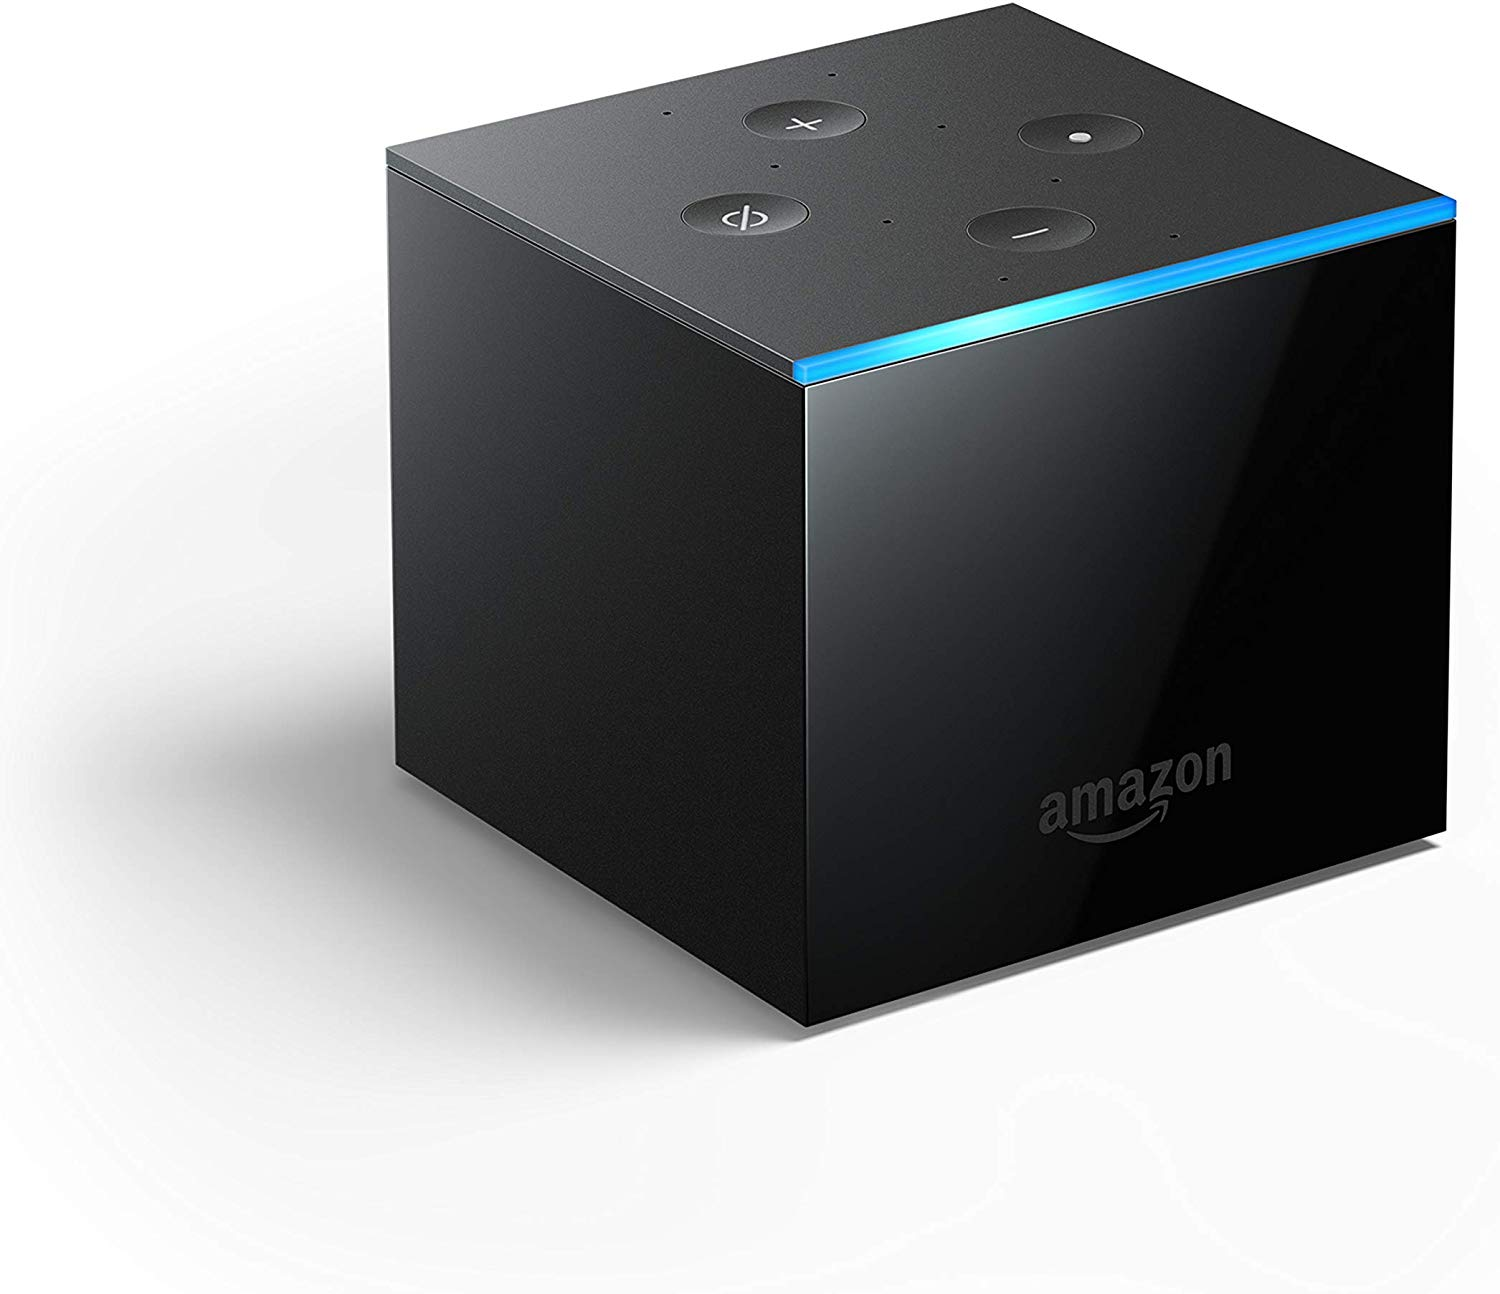 Save £30 All-new Fire TV Cube | Hands free with Alexa, 4K Ultra HD streaming media player